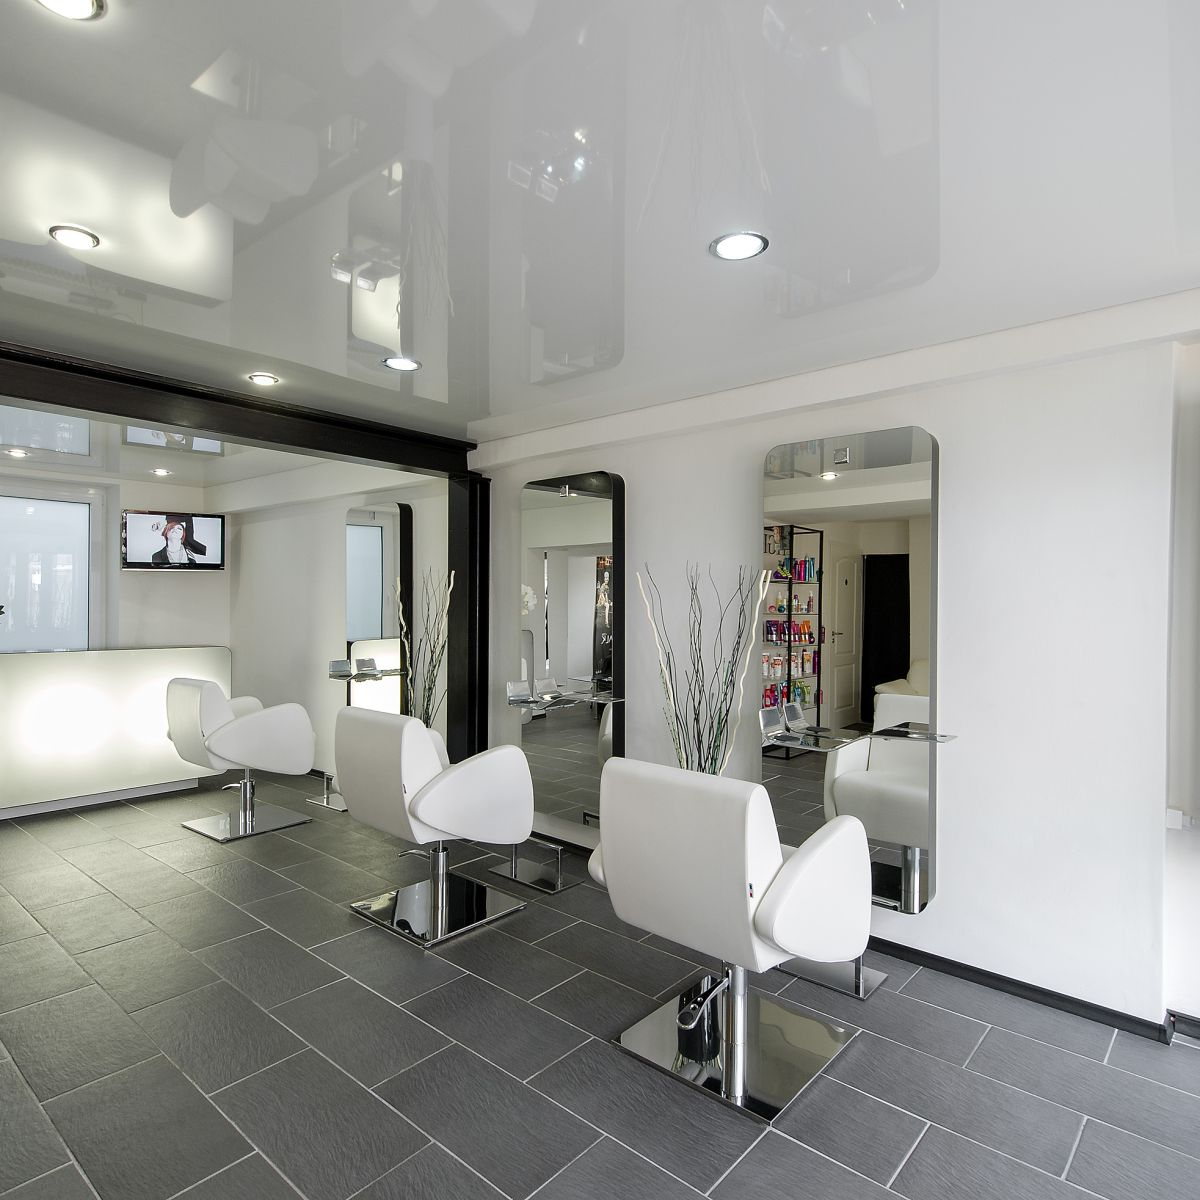 Nelson mobilier hair salon furniture made in france for Beauty salon layout